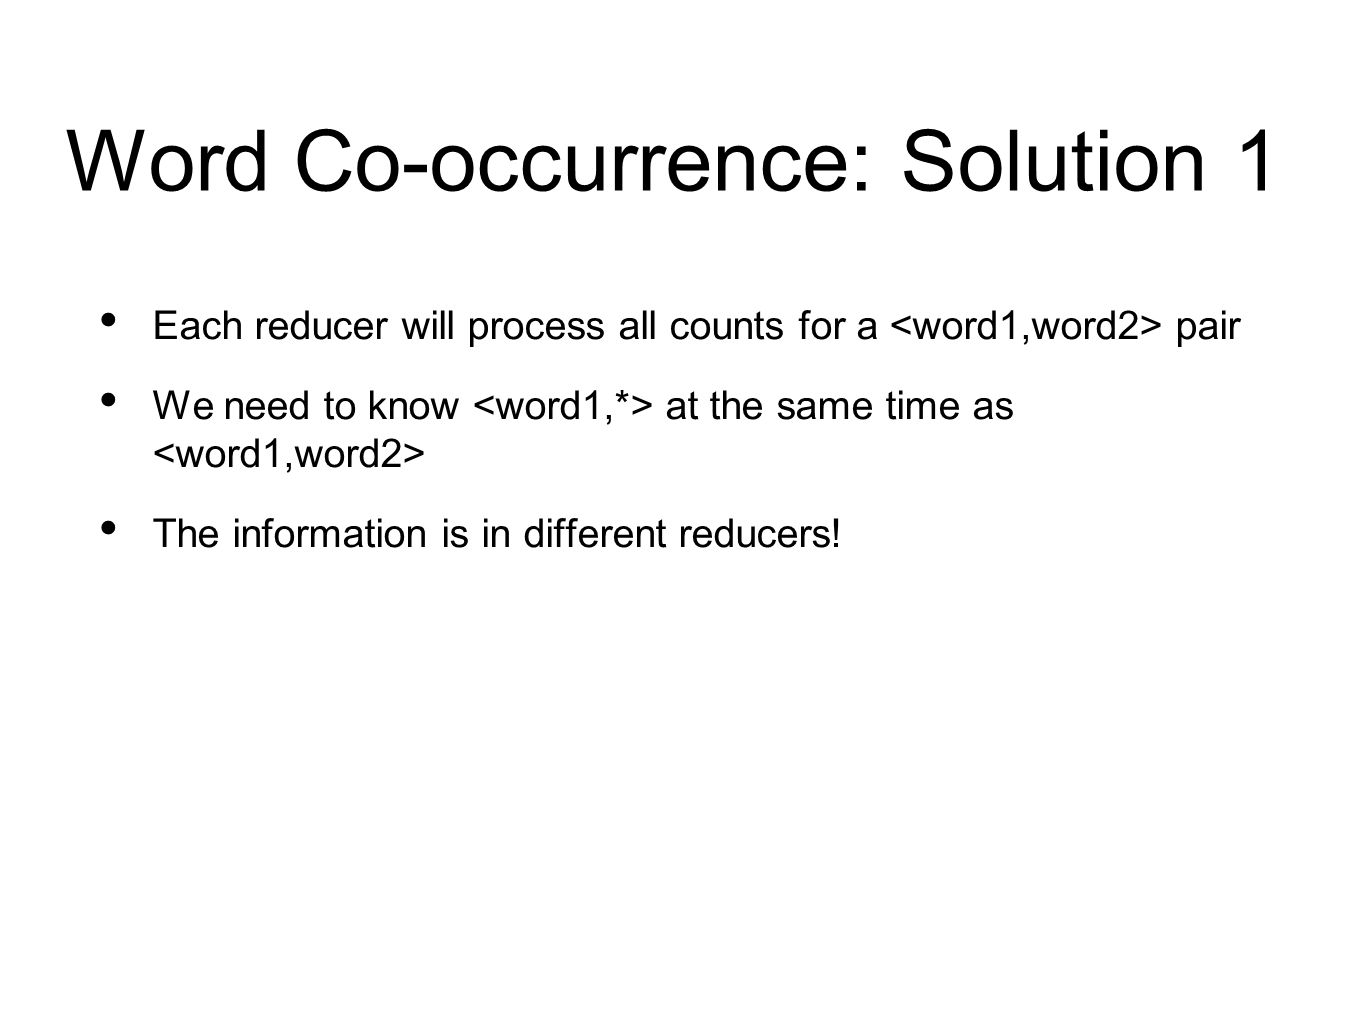 Word Co-occurrence: Solution 1 Each reducer will process all counts for a pair We need to know at the same time as The information is in different reducers!